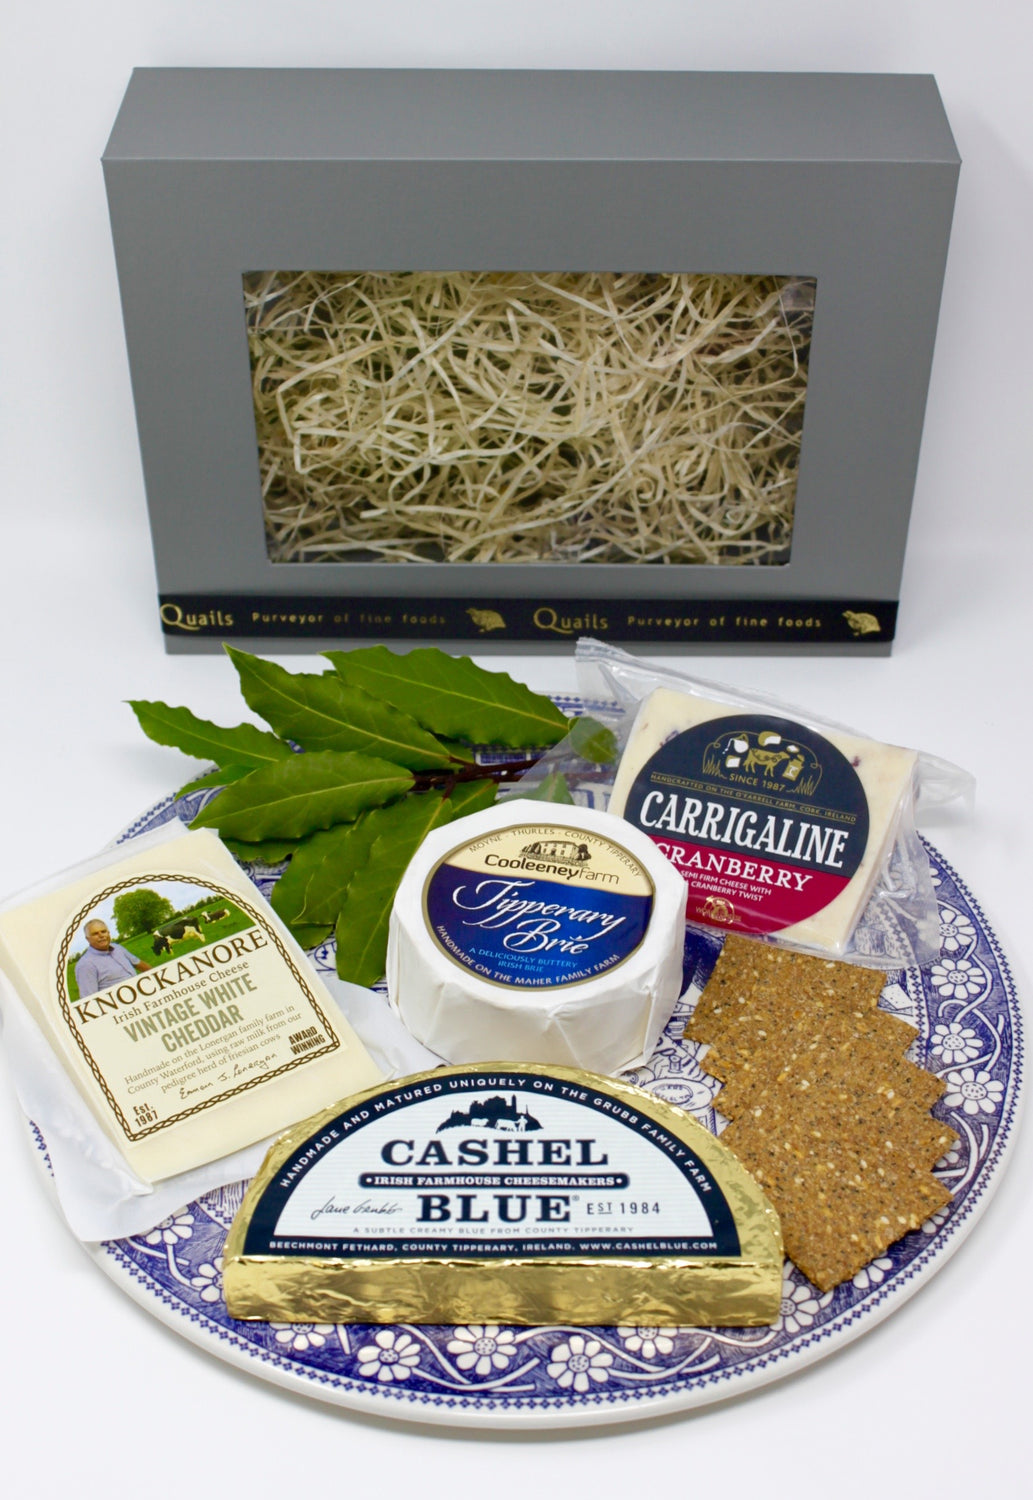 Quails Cheese Box